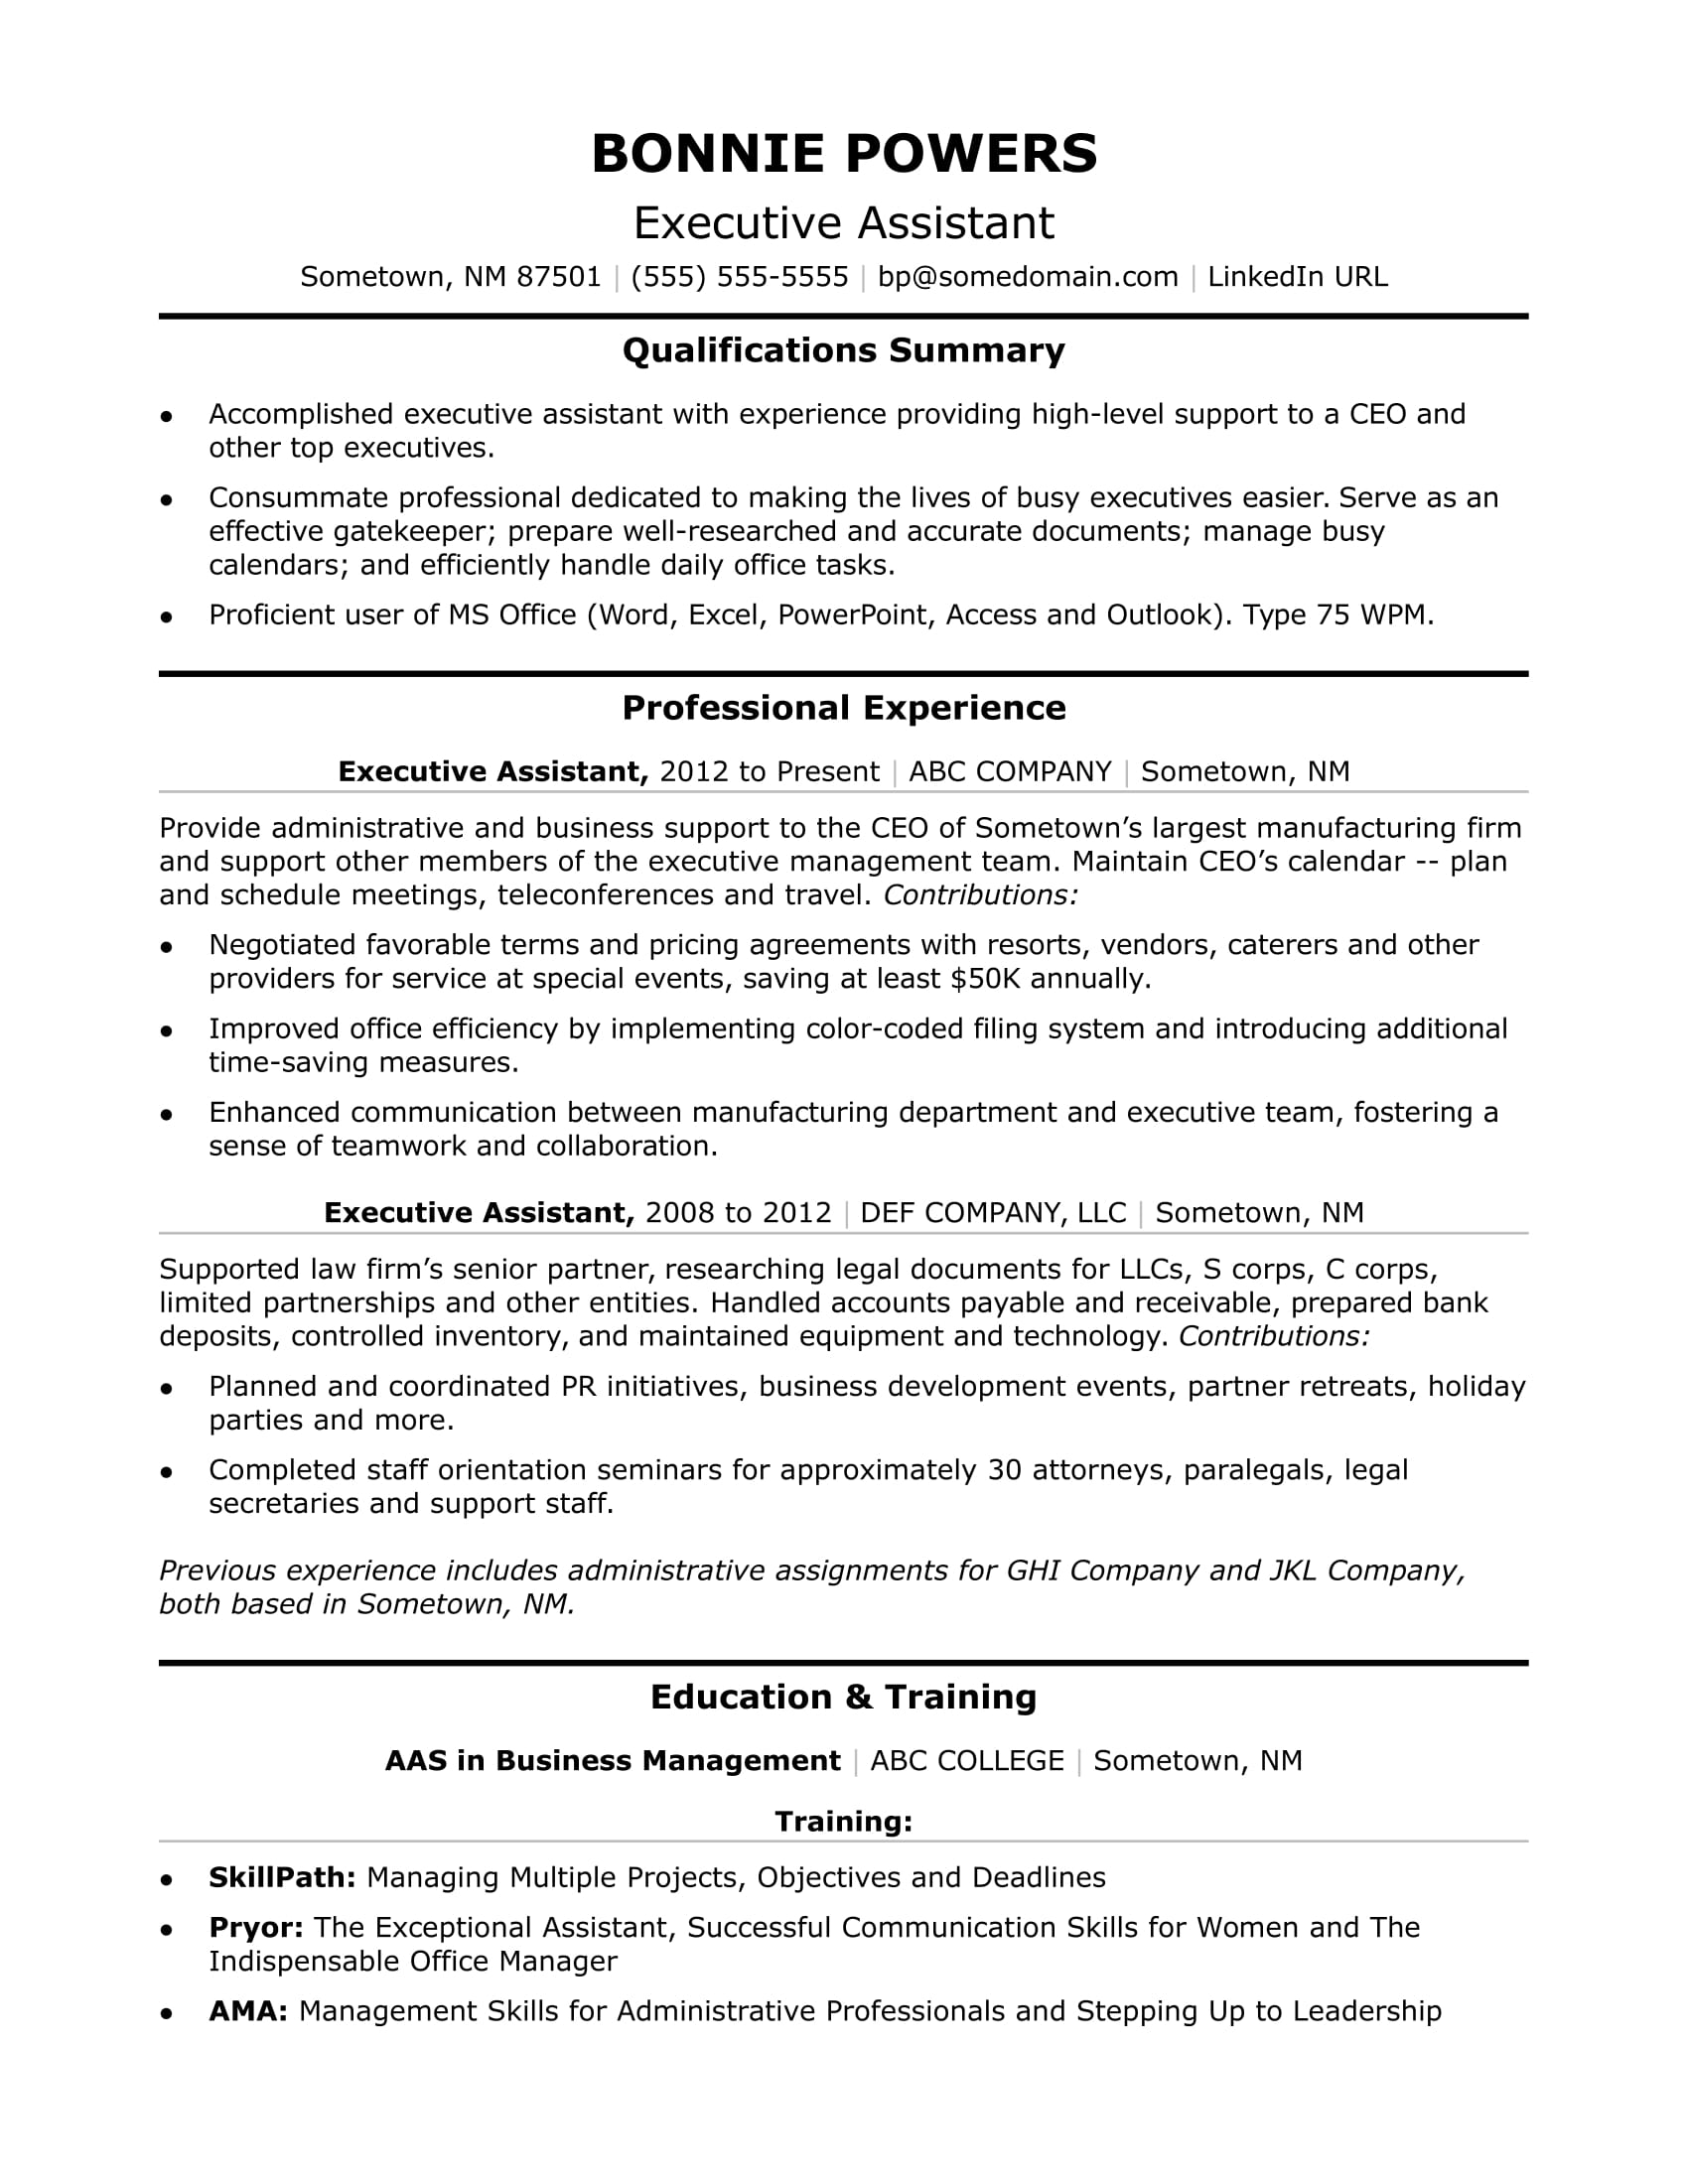 executive administrative assistant resume sample monster summary examples for devops Resume Administrative Assistant Resume Summary Examples